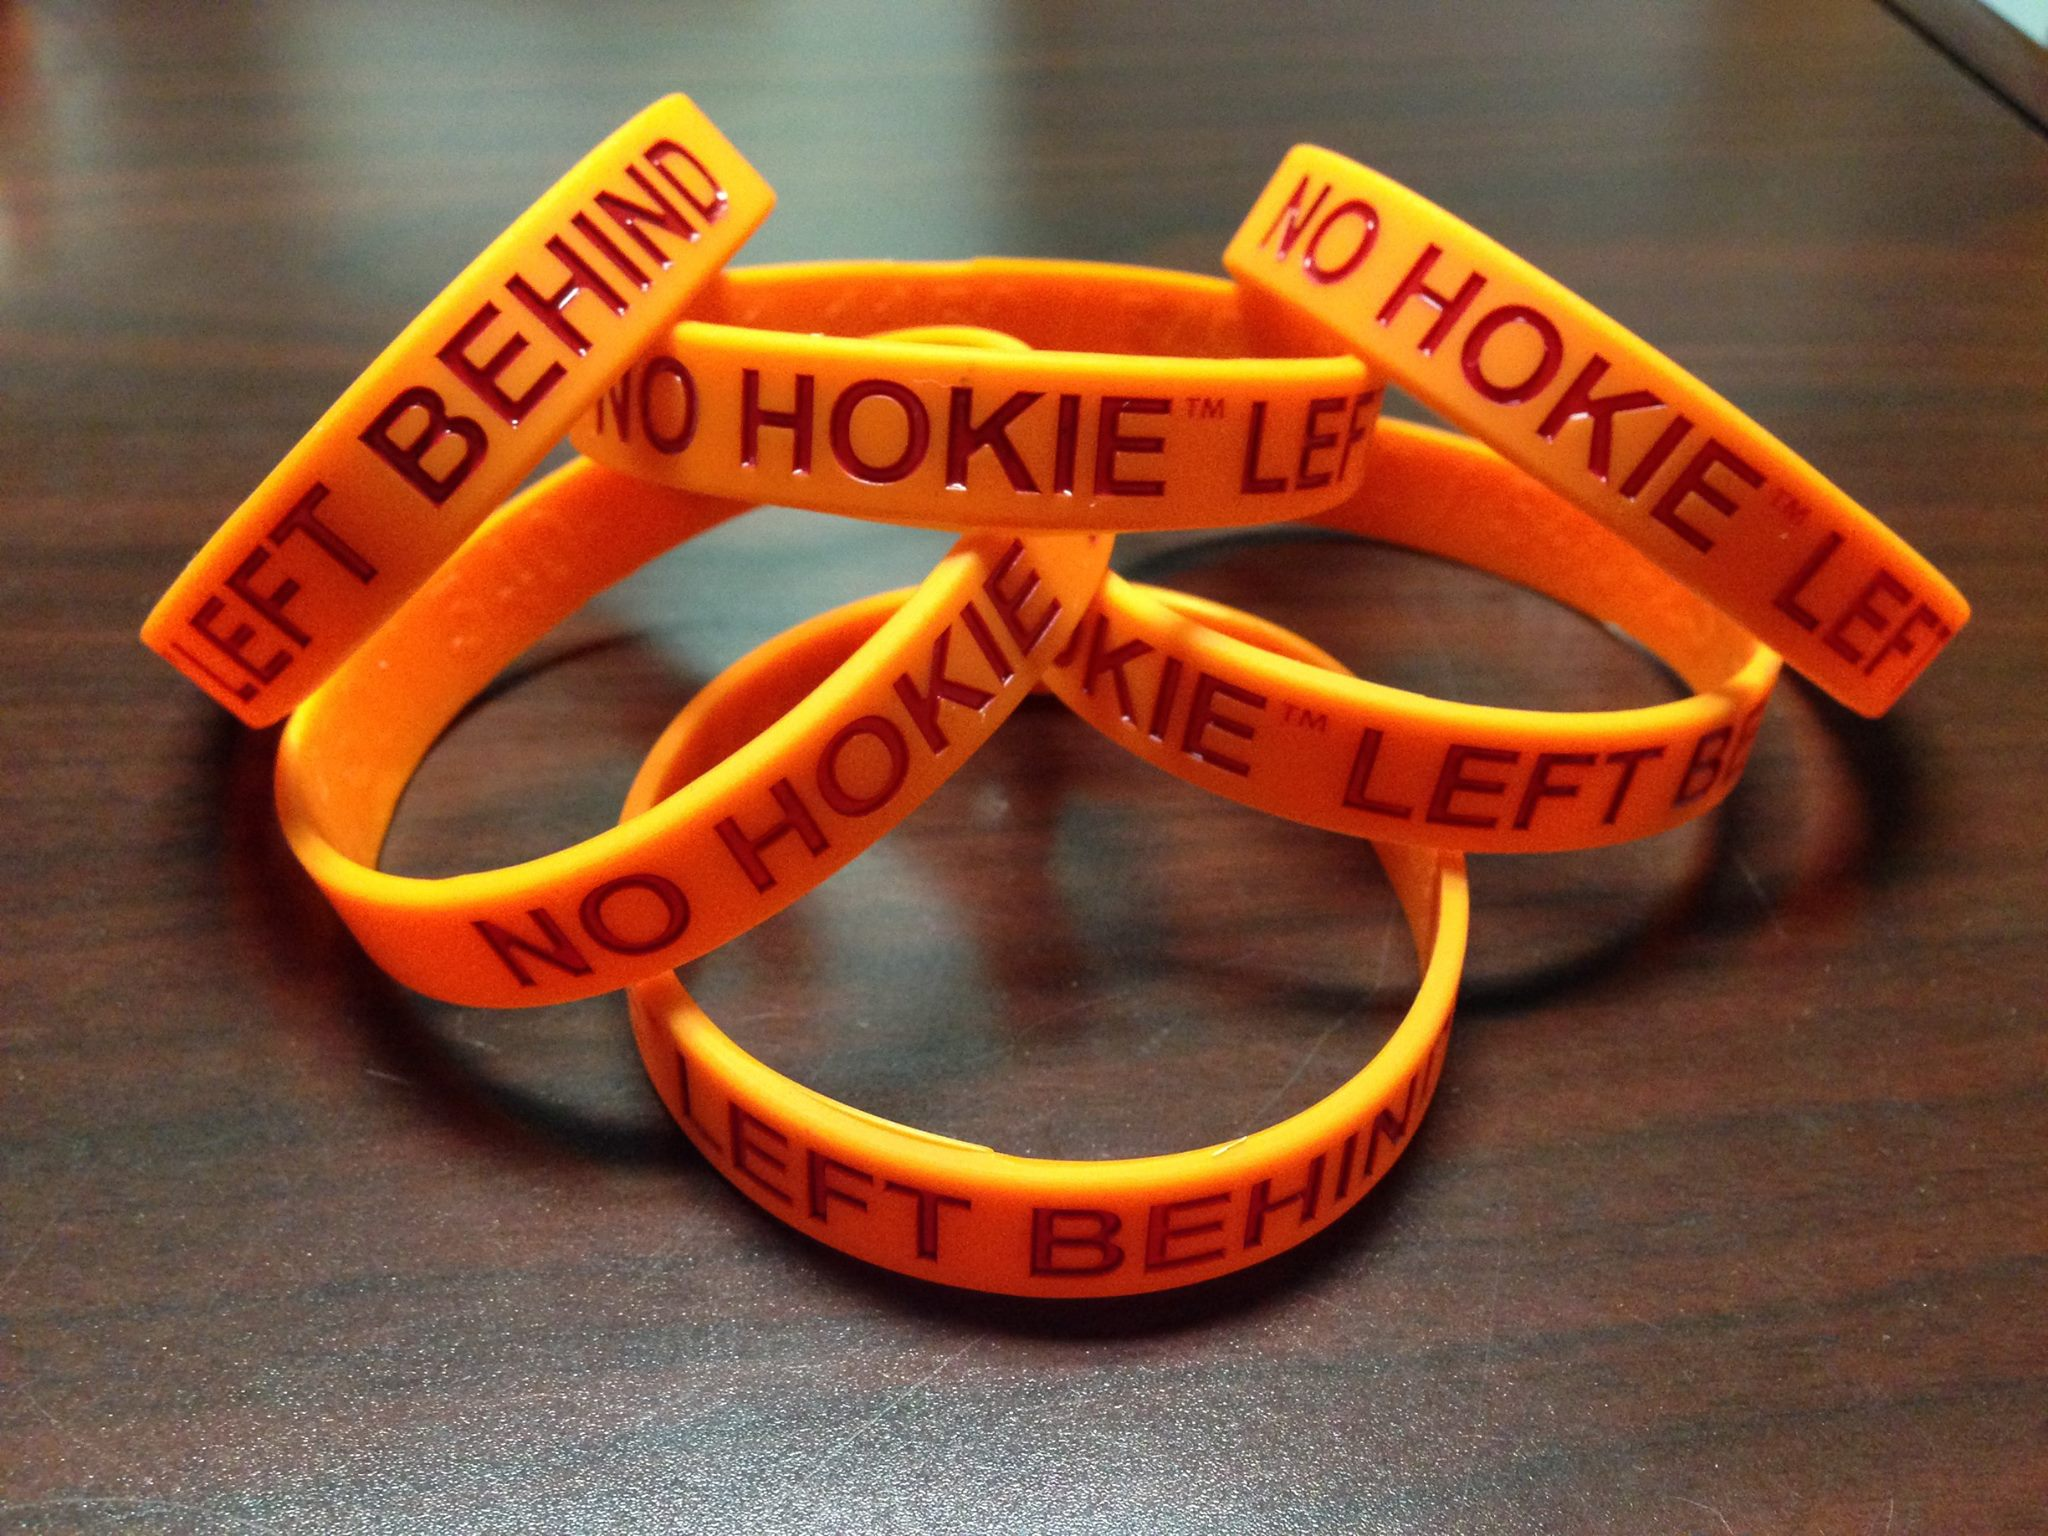 Bracelets for students who take the No Hokie Left Behind pledge.